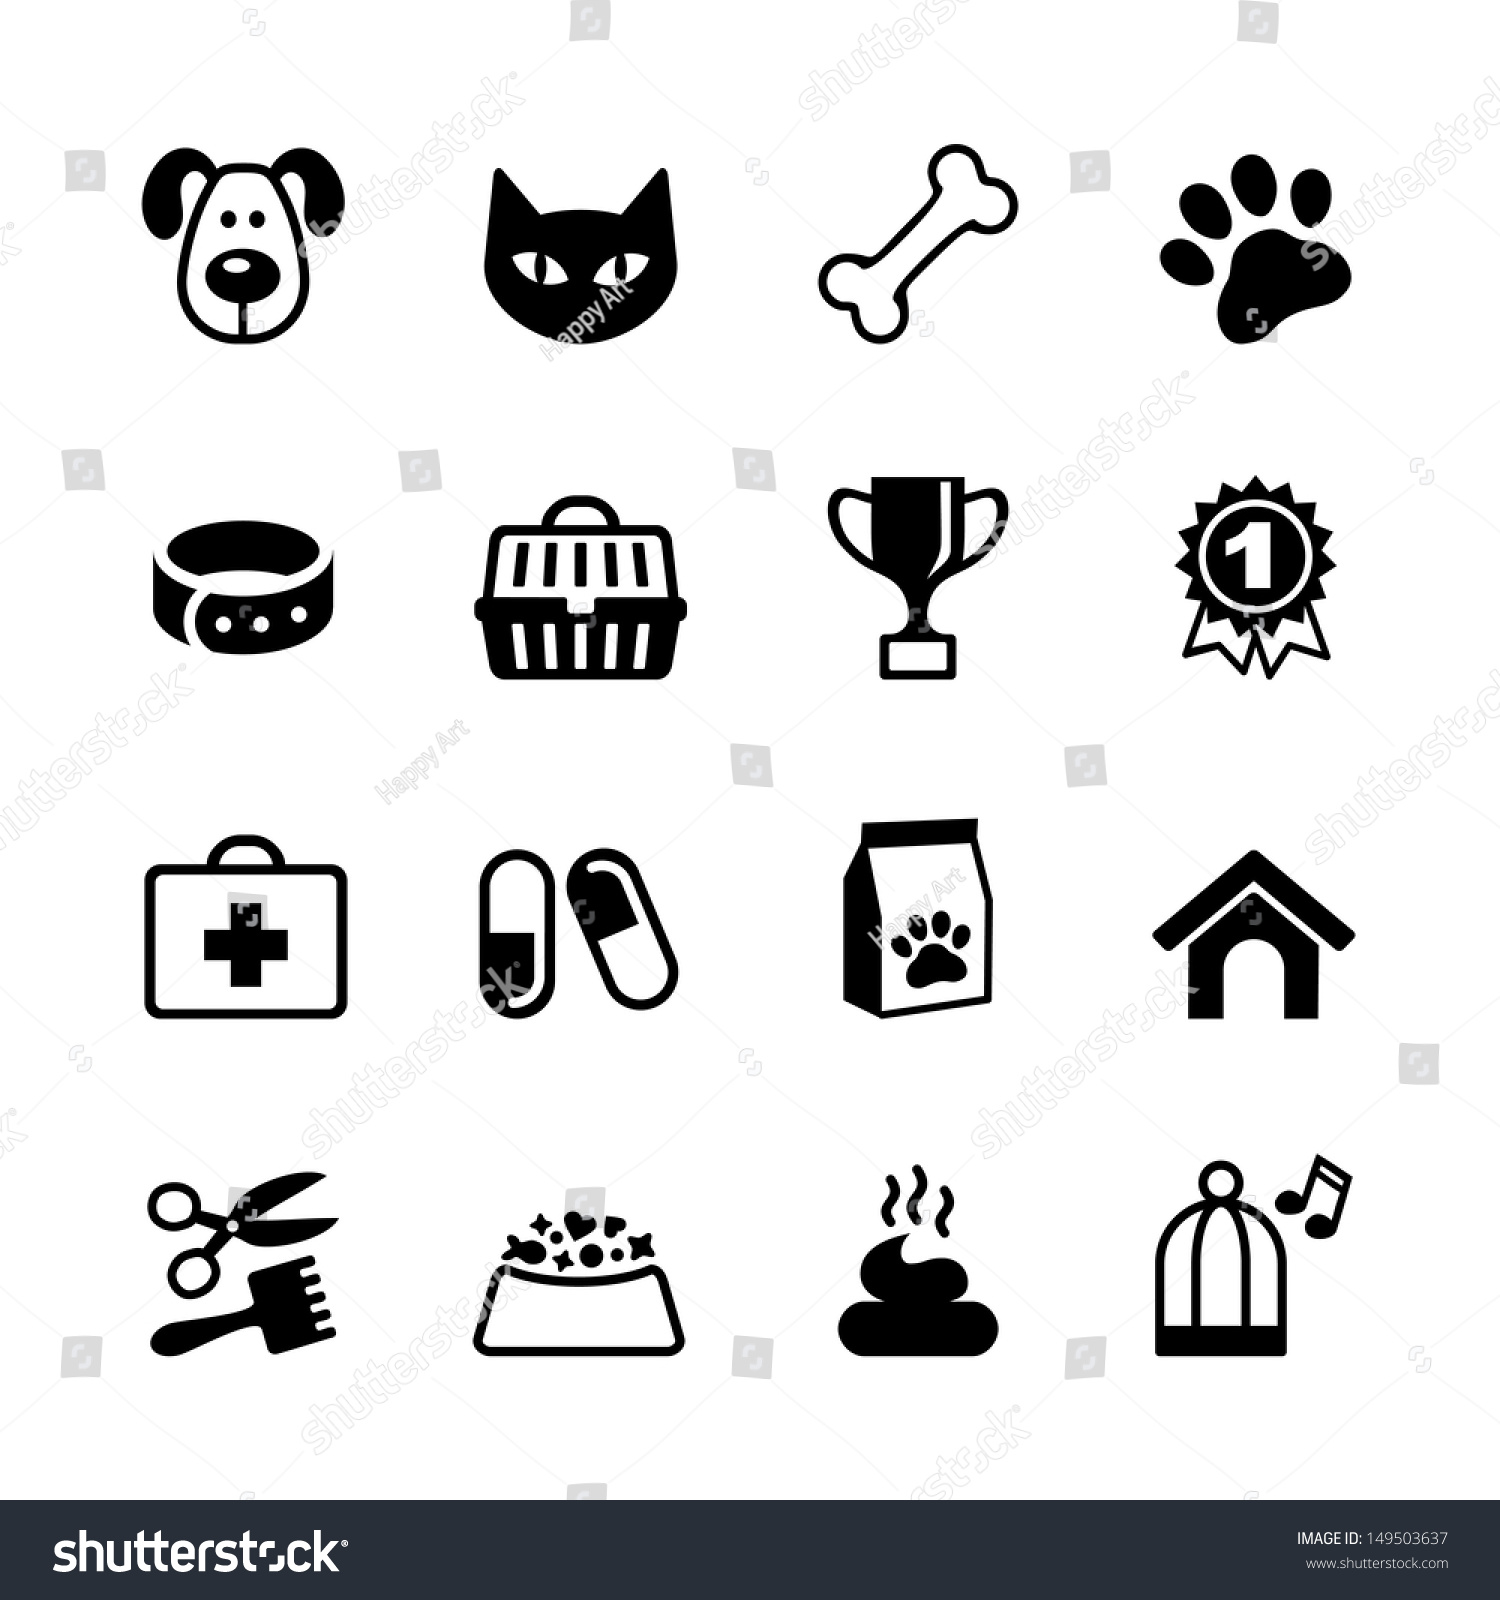 Tools Clipart veterinarian dog stock vectors & vector clip art ... Veterinary Tools Clip Art